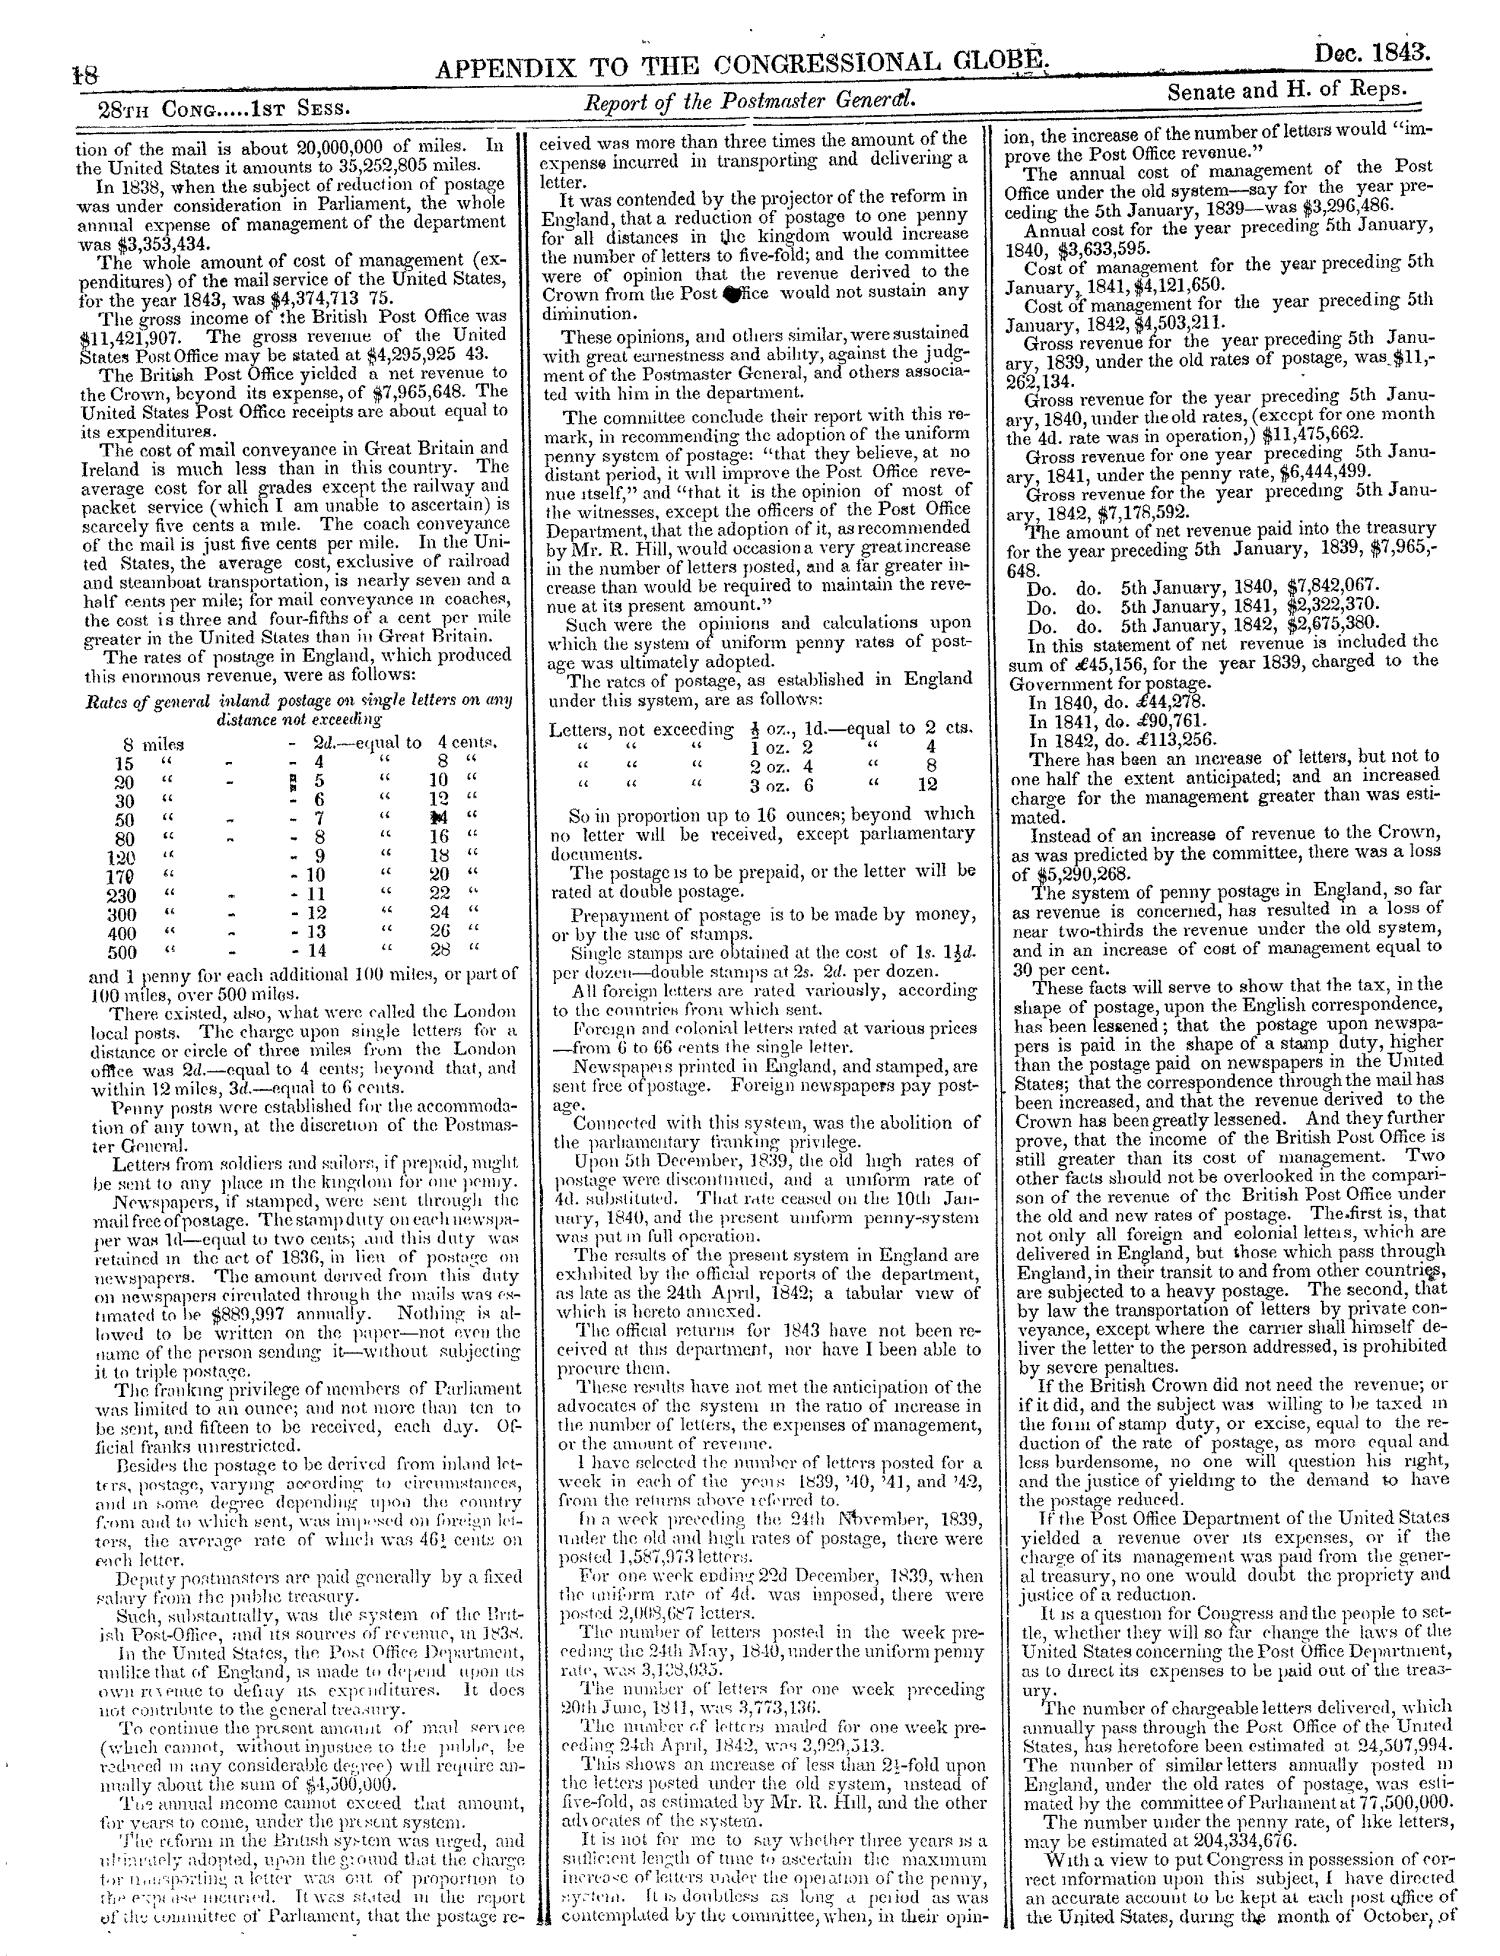 The Congressional Globe, Volume 13, Part 2: Twenty-Eighth Congress, First Session                                                                                                      18